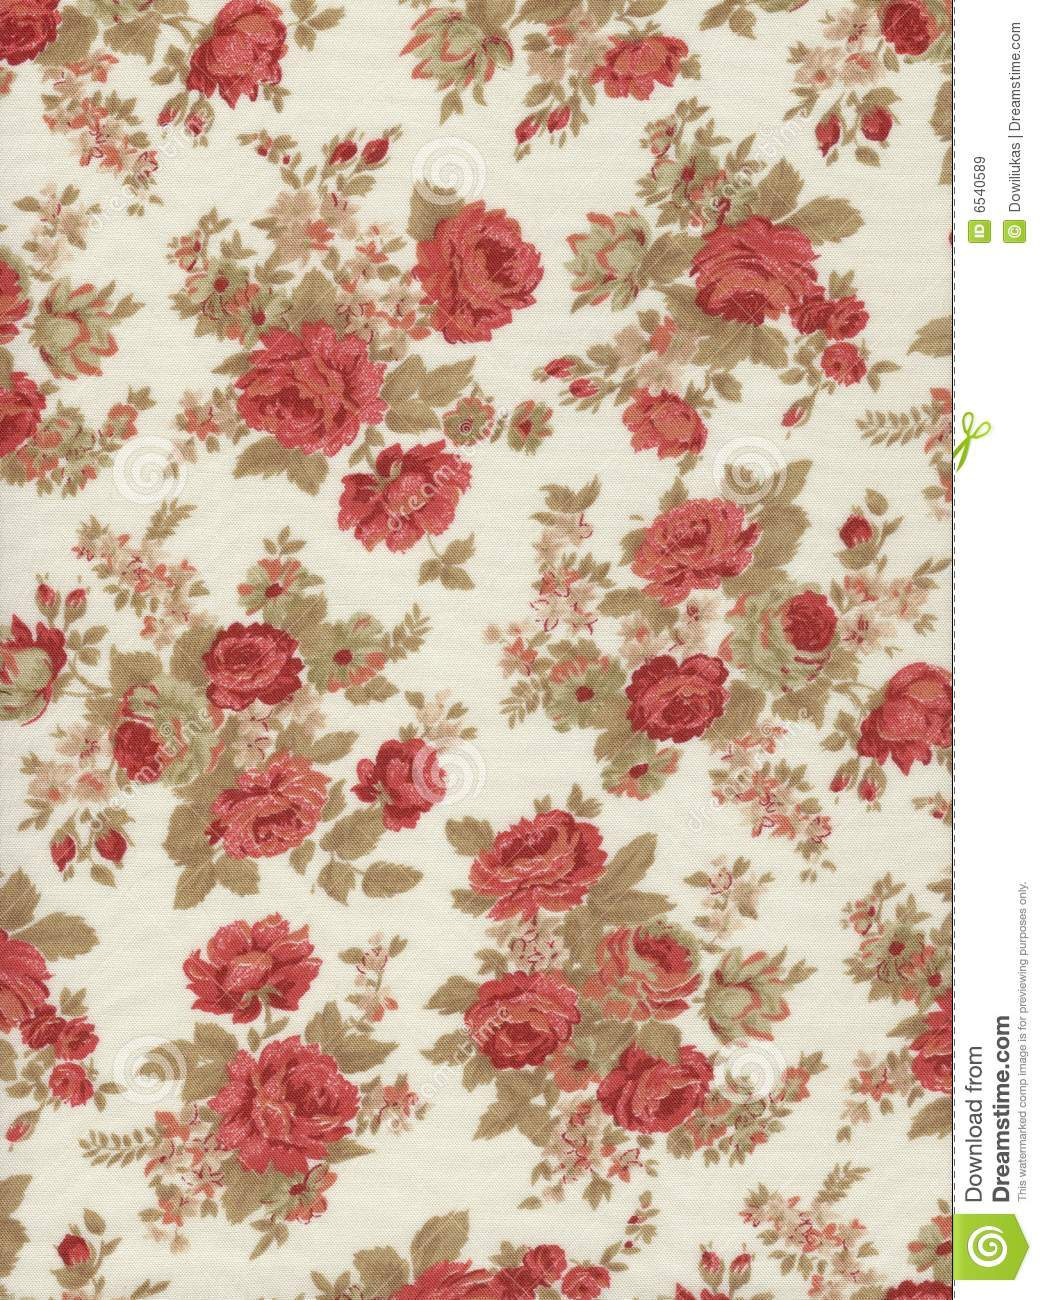 vintage fabric stock image image of rose fabric